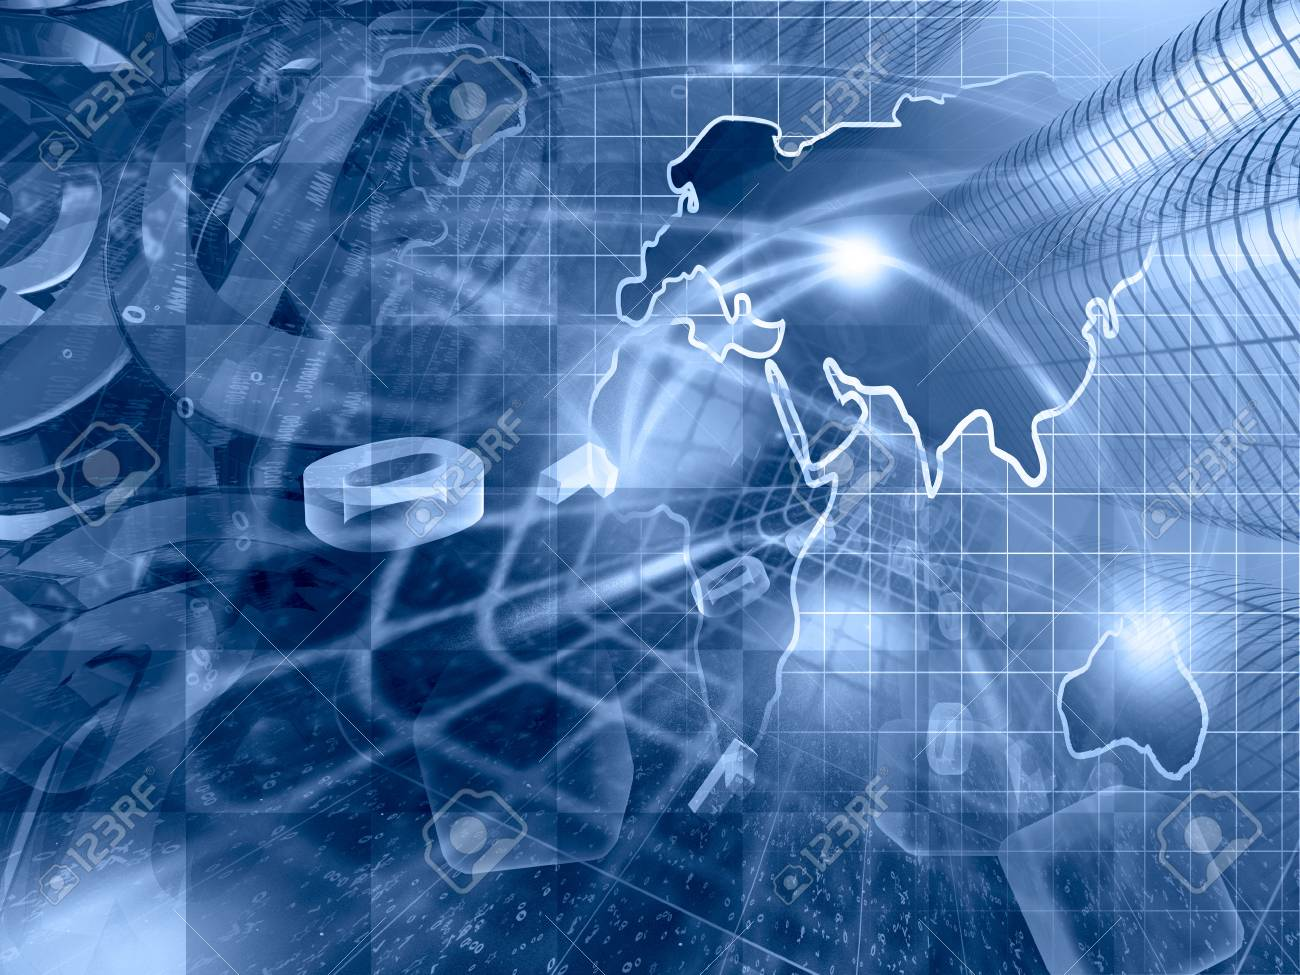 digits buildings and map abstract computer background in blues